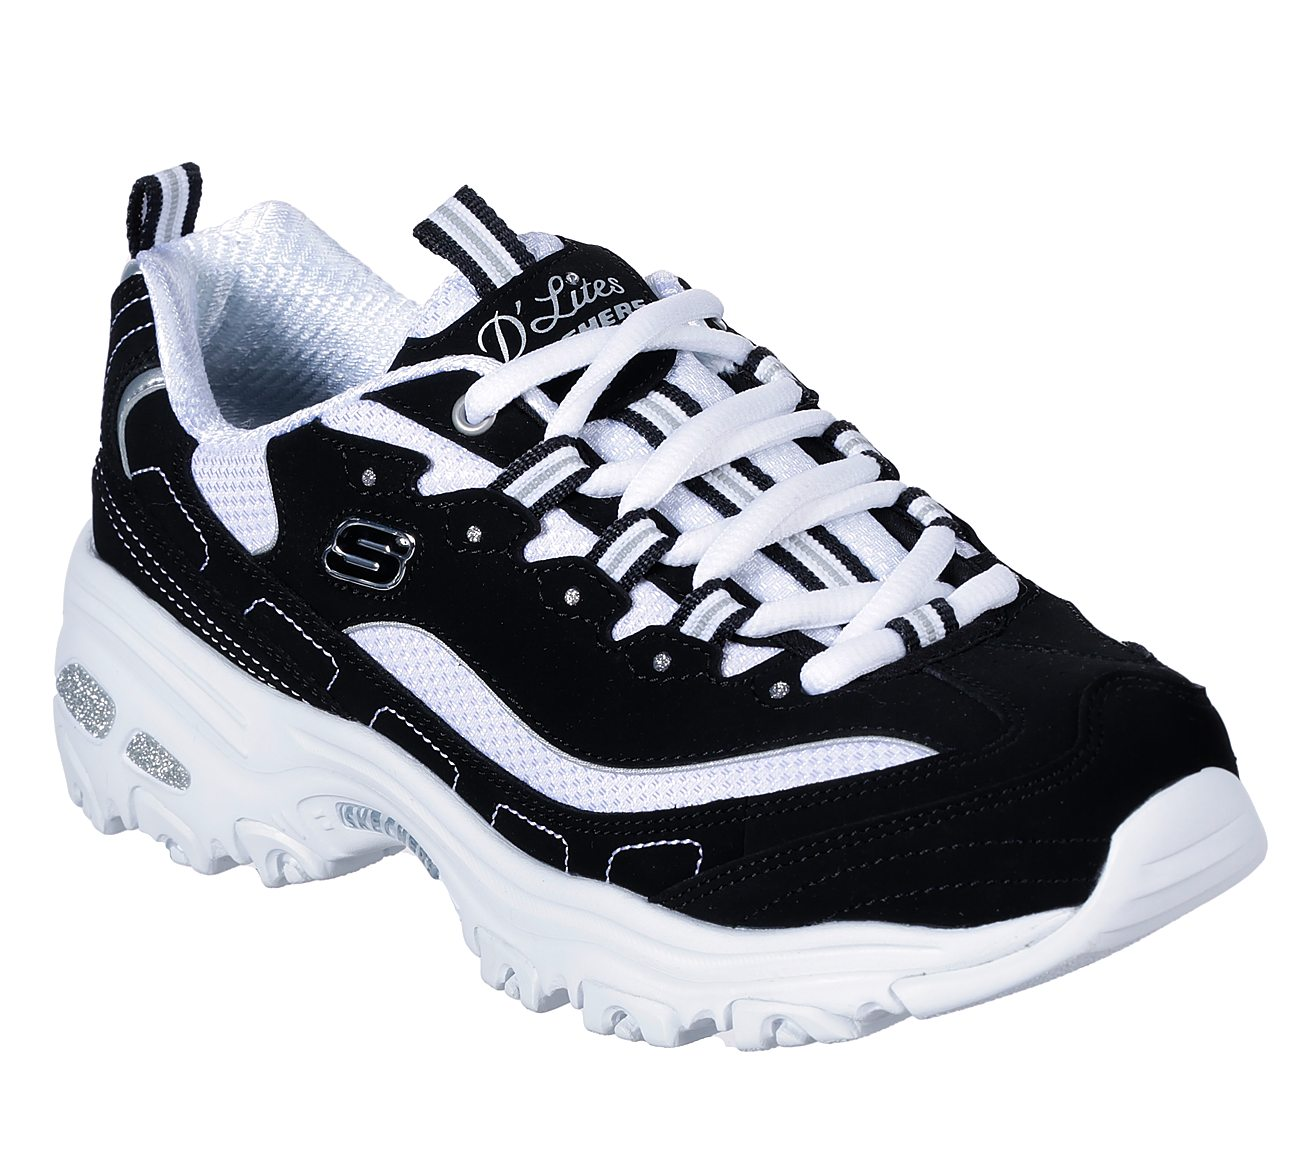 c076f272898 Buy SKECHERS D Lites - Biggest Fan D Lites Shoes only  70.00